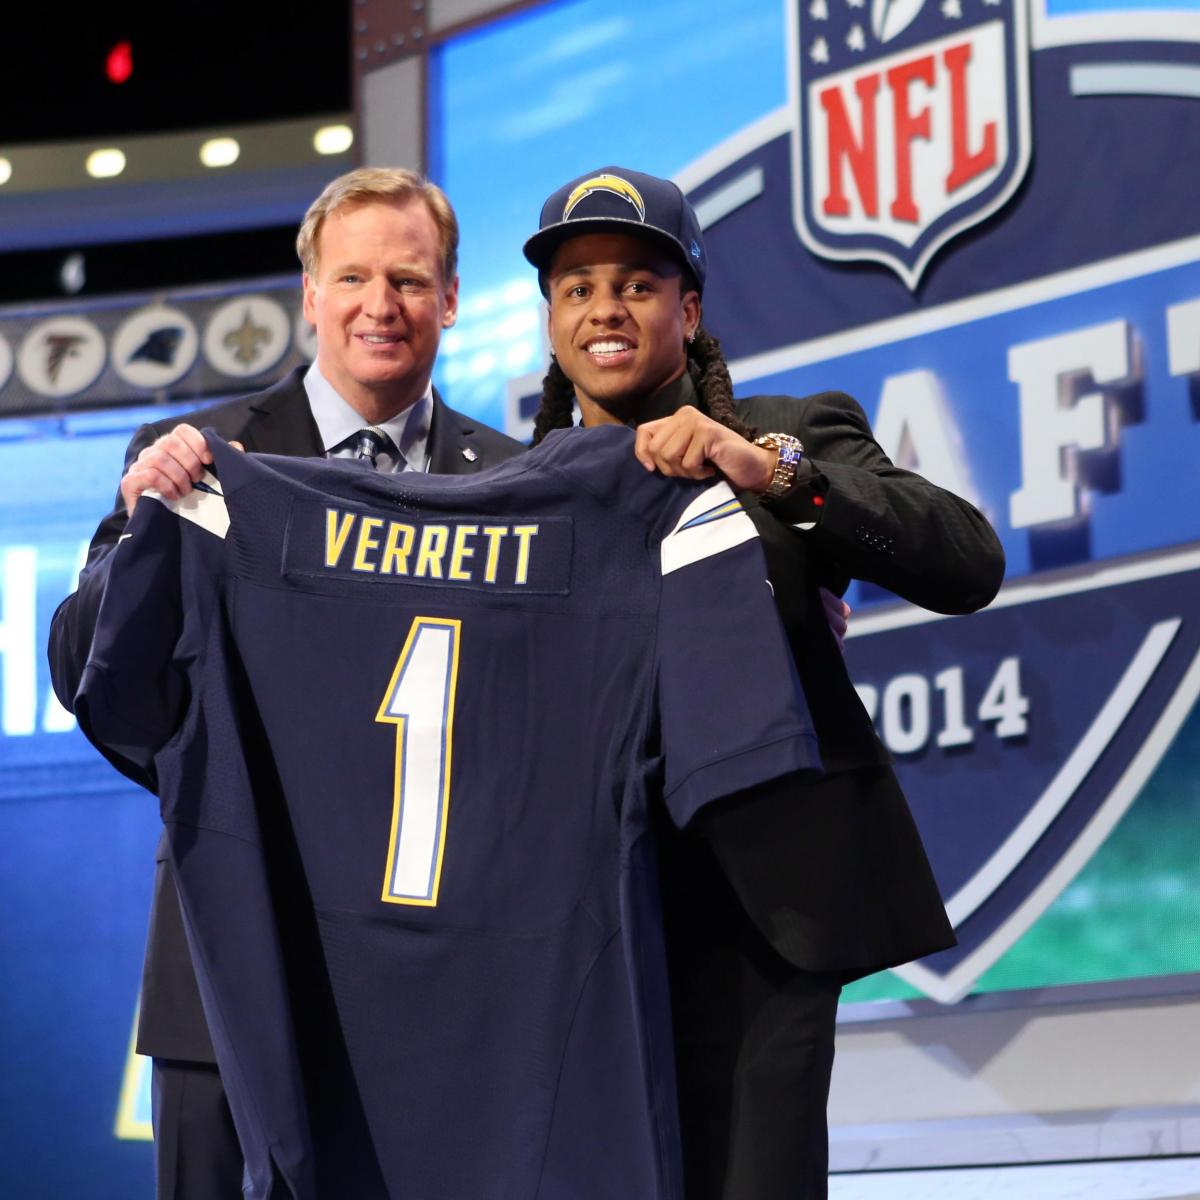 San Diego Chargers Draft: San Diego Chargers 2014 Draft: The Good, The Bad And The